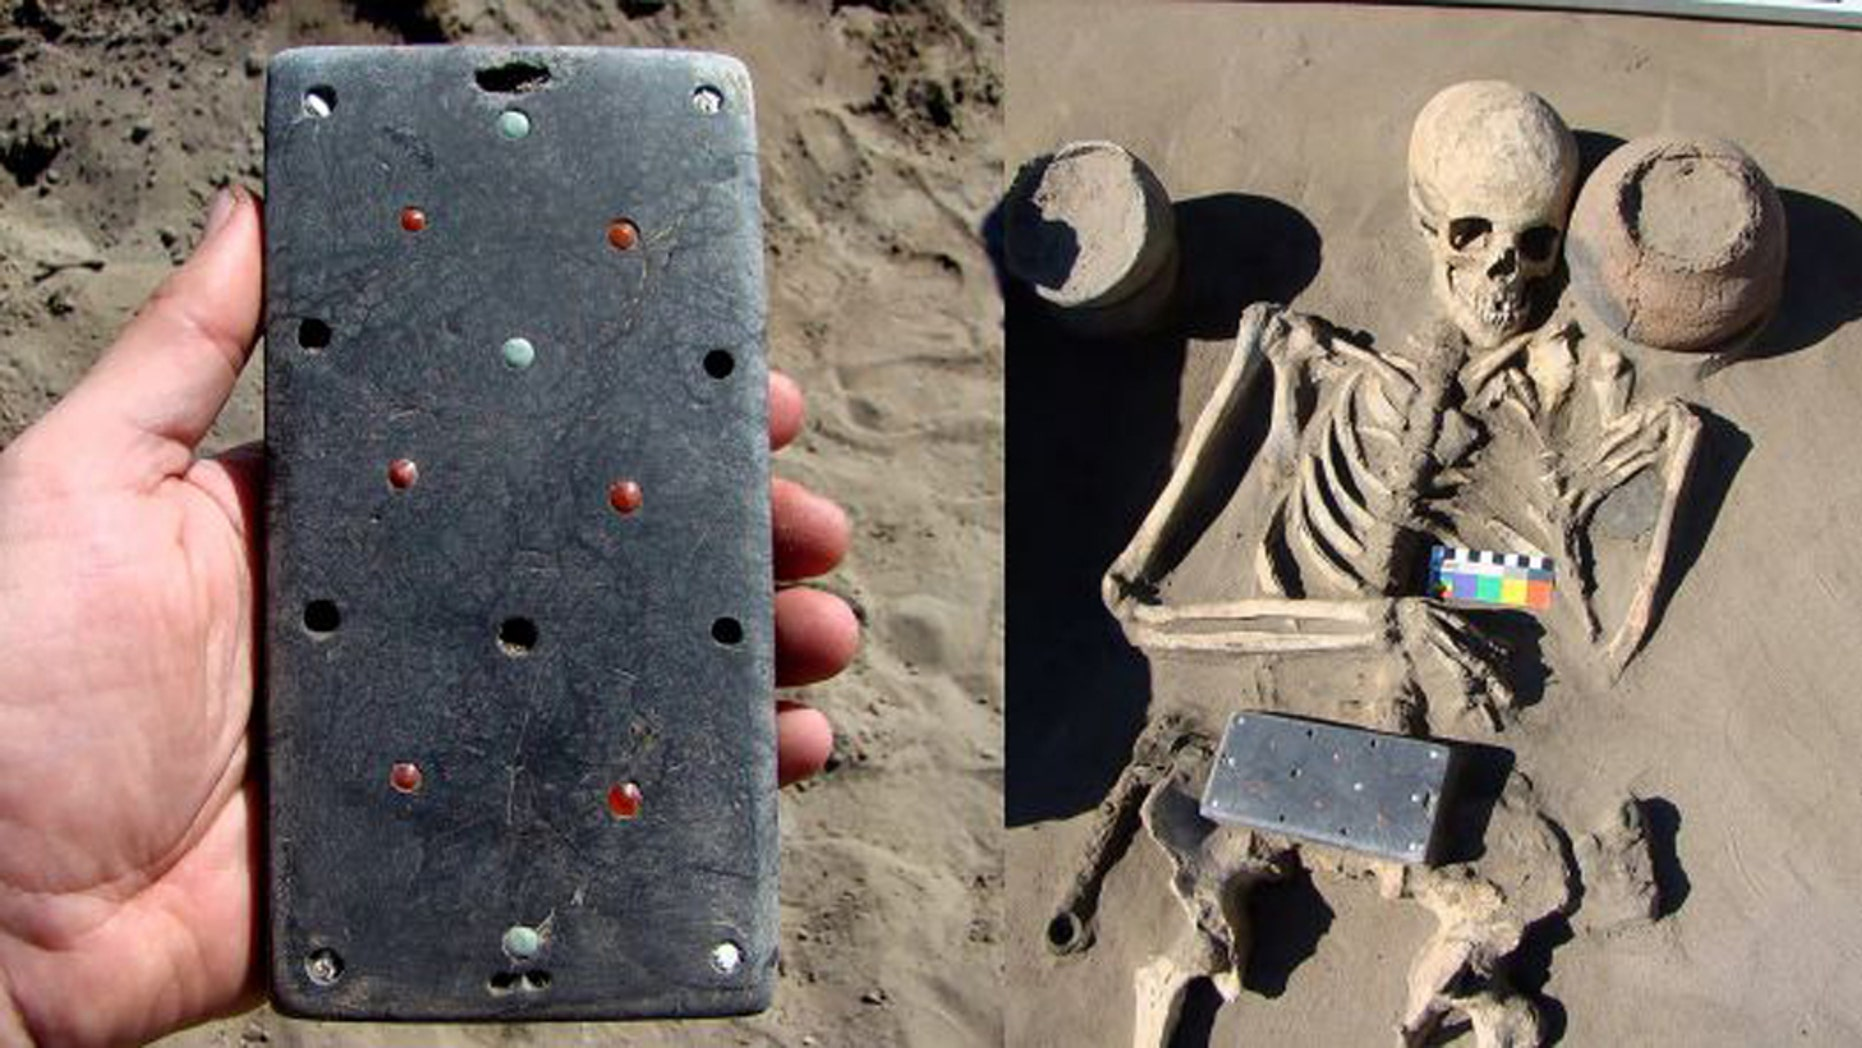 Westlake Legal Group iphone-russia-case 2,100-year-old 'iPhone case' discovered in 'Russian Atlantis' Mindy Weisberger LiveScience fox-news/columns/digging-history fnc/science fnc article 6d6cd7f4-22c6-5358-9210-2ad31381675a